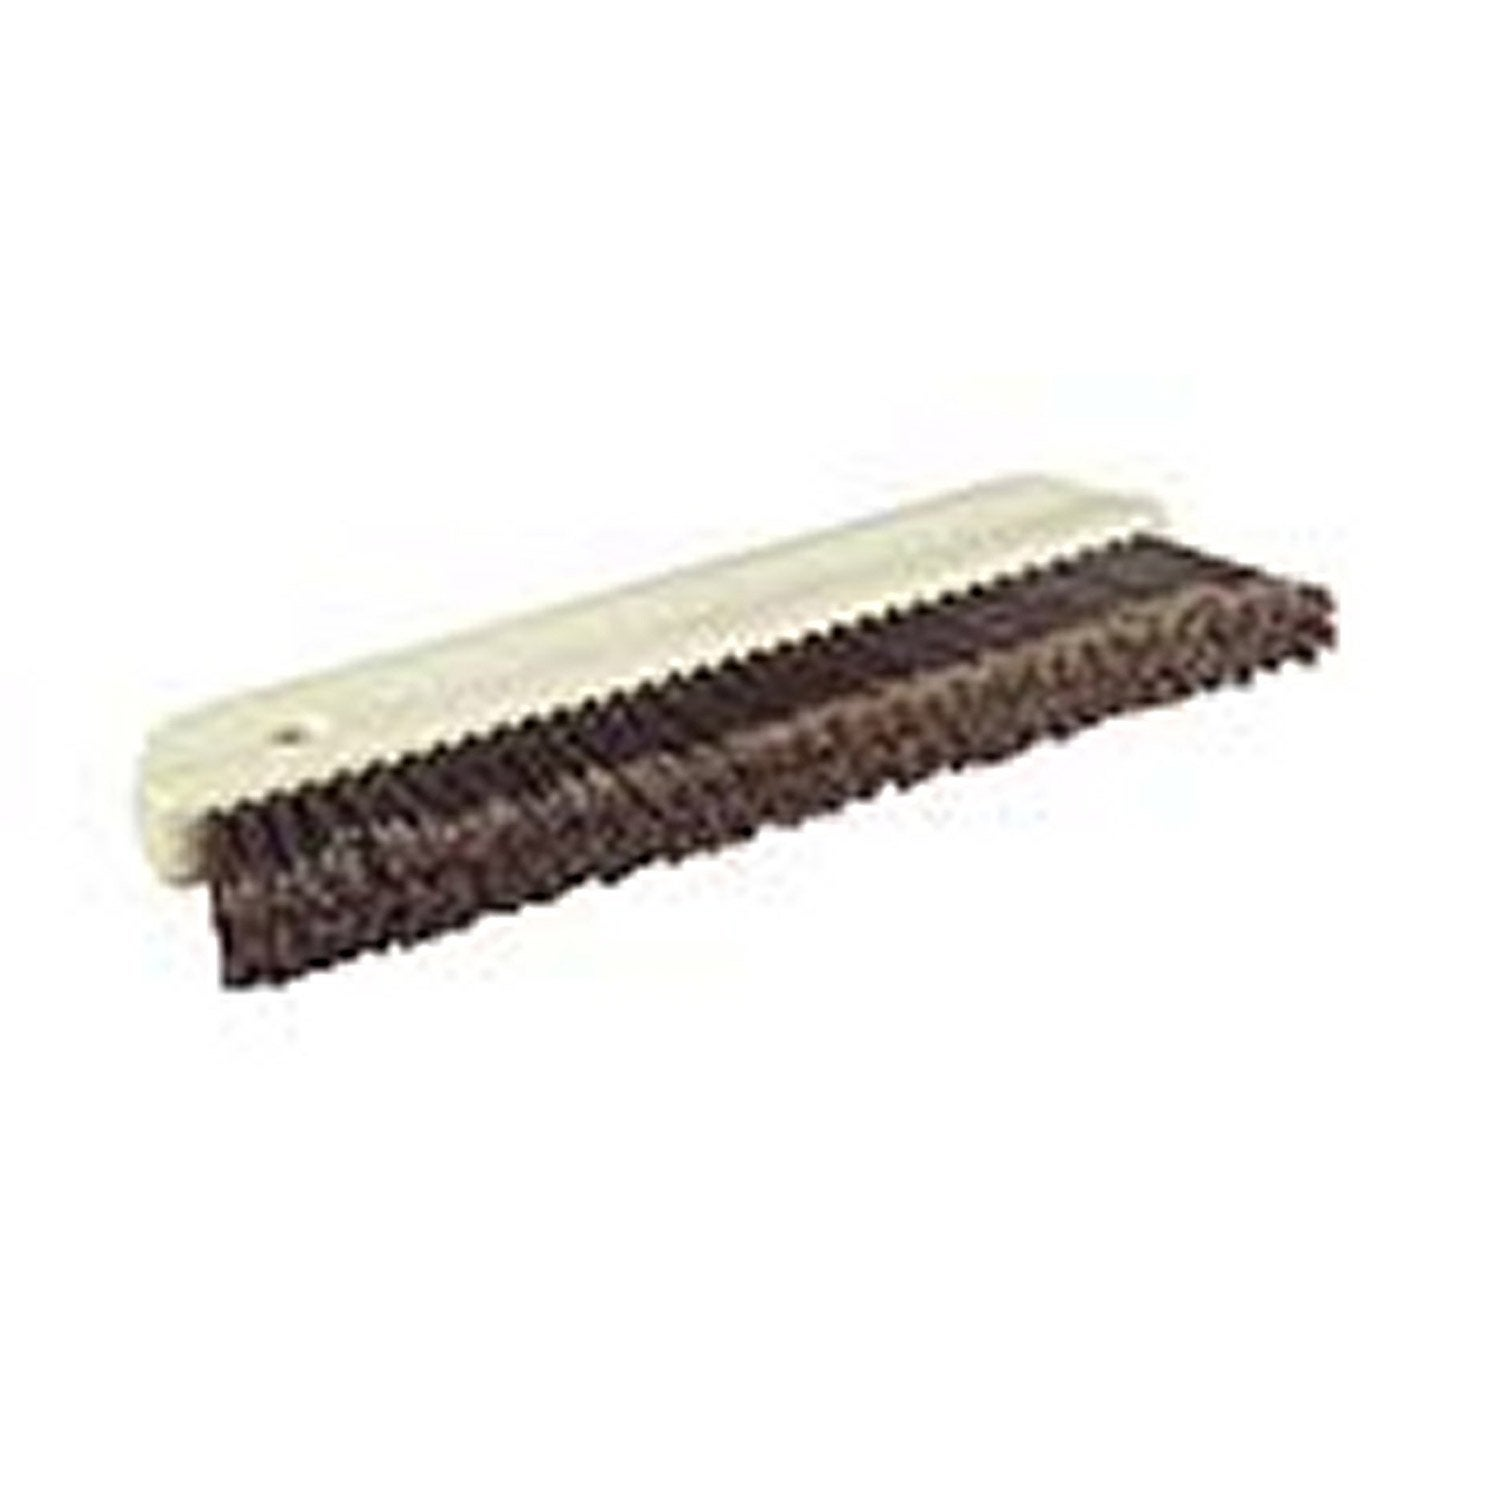 brosse plat pour encoller du papier peint nespoli 300 mm leroy merlin. Black Bedroom Furniture Sets. Home Design Ideas